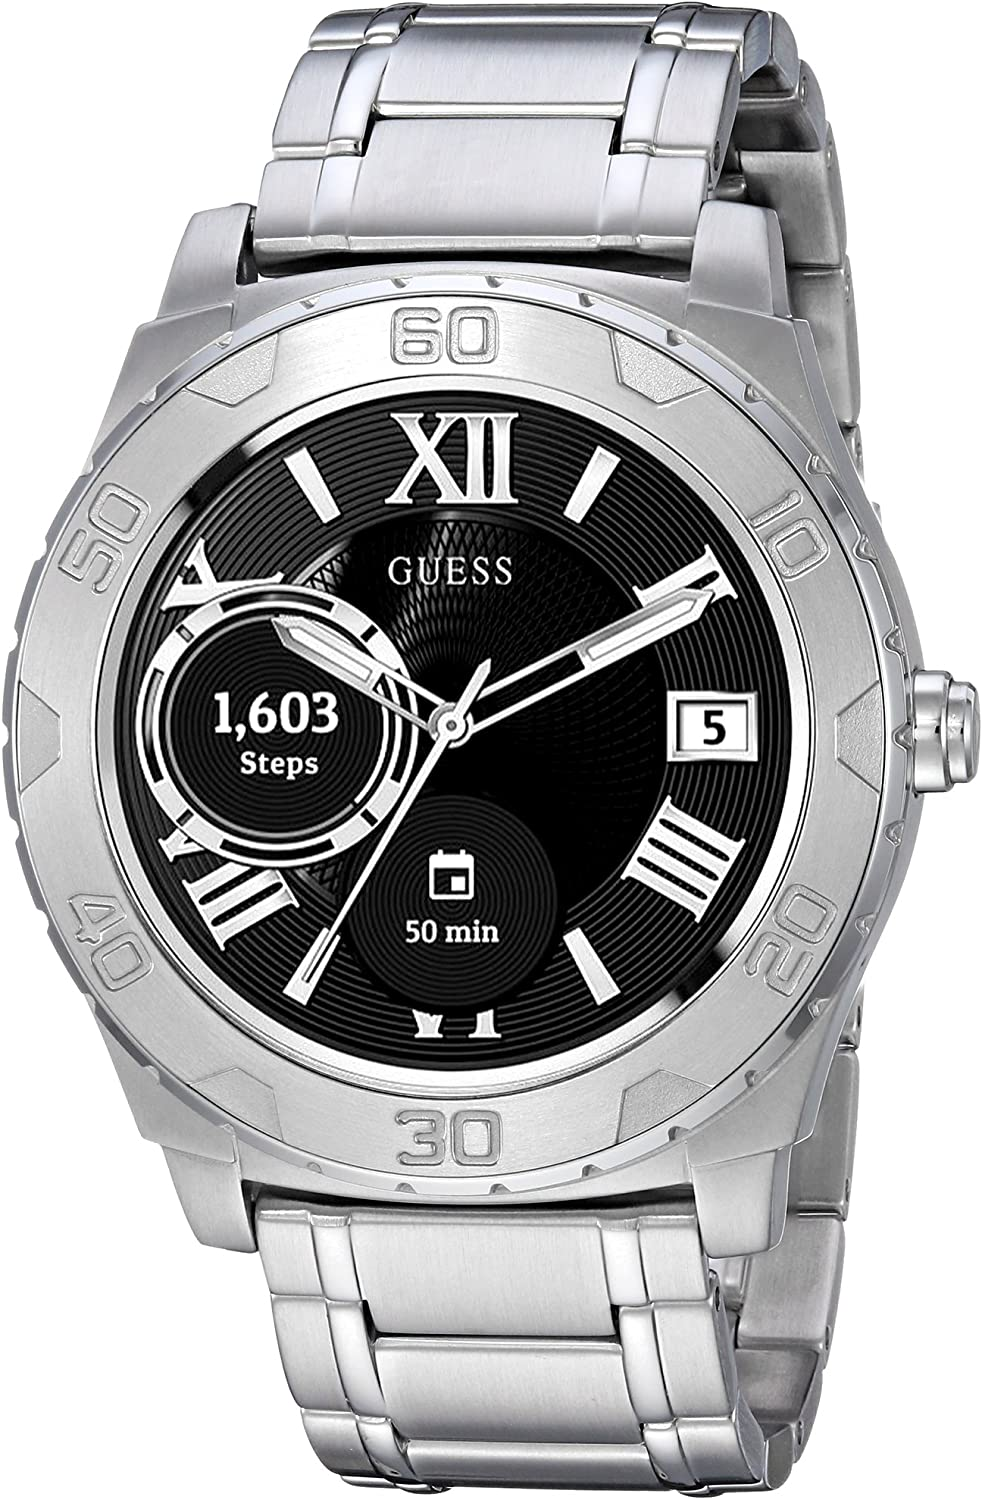 periodo Disegnare un dipinto Millimetro  Guess Ace Mens Touch AMOLED Silver Smart: Amazon.co.uk: Electronics